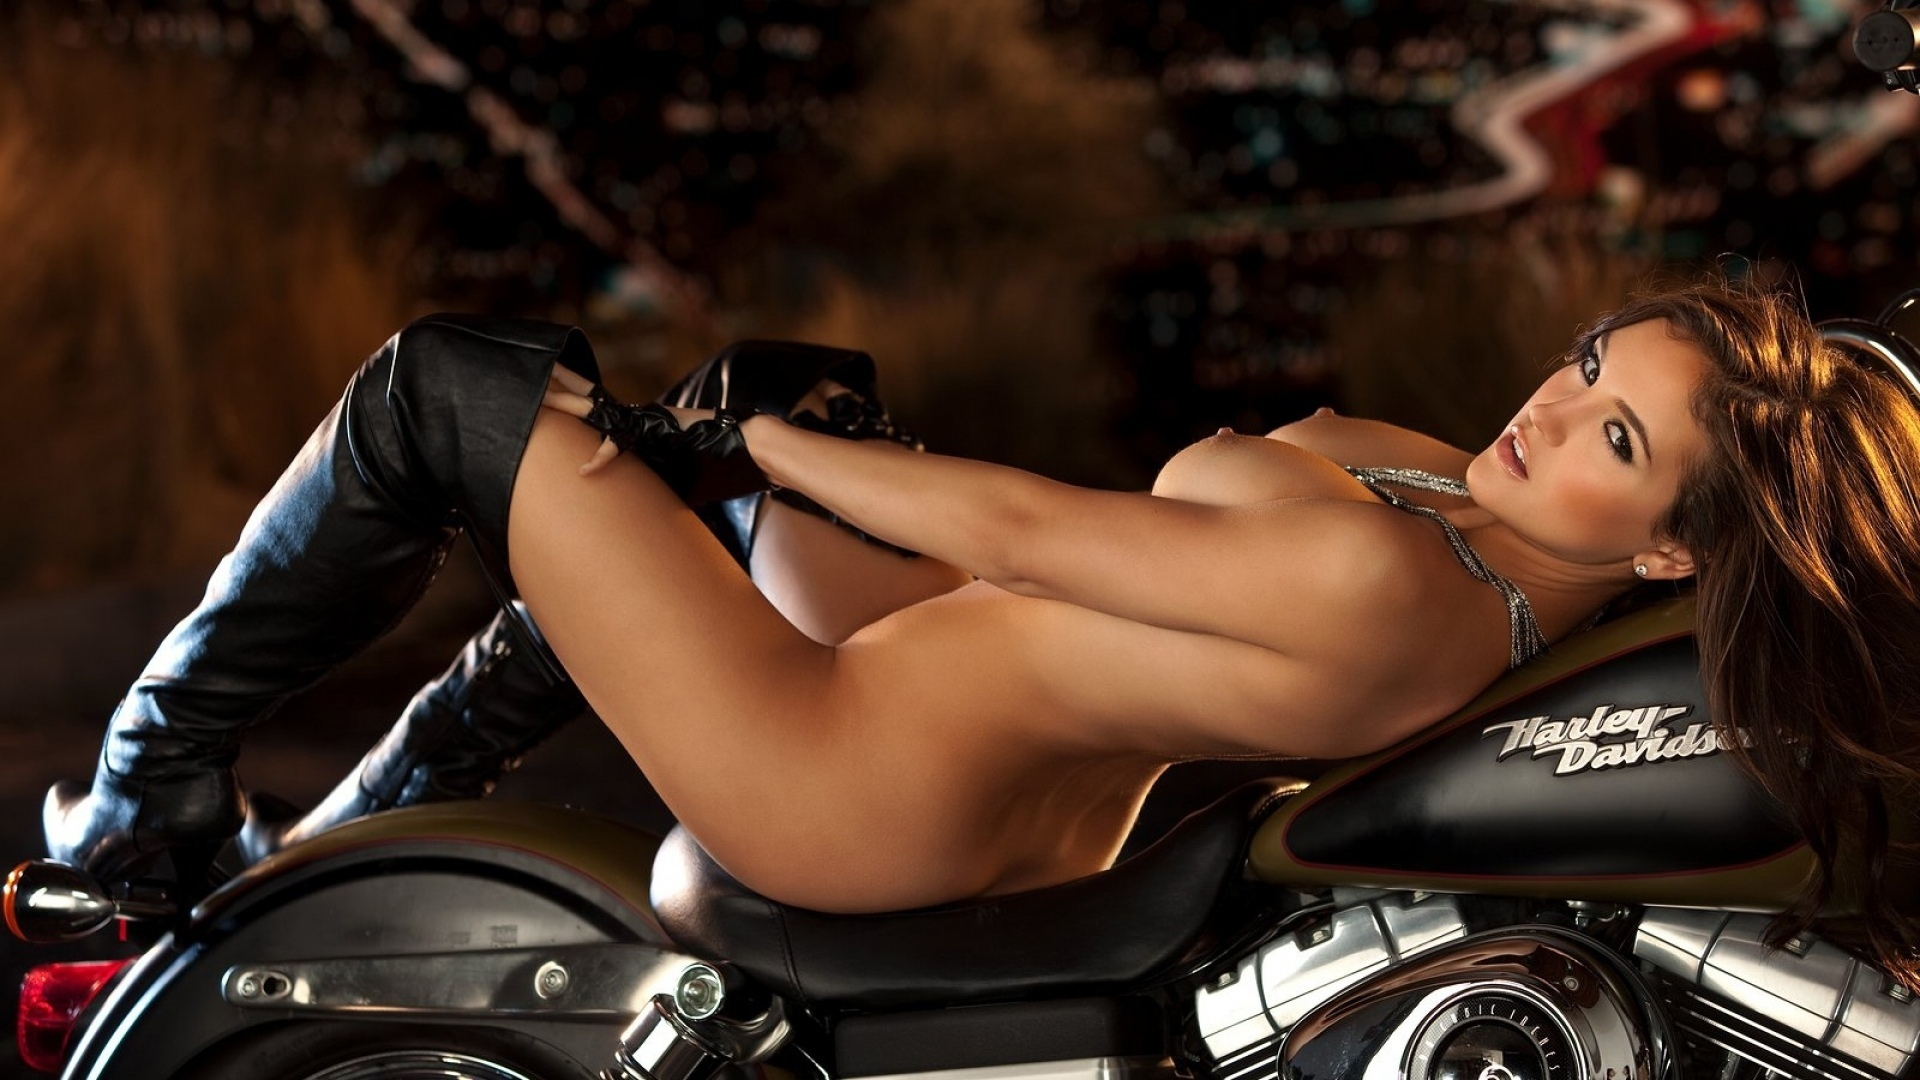 nudesexygirl-and-harleydavidson-french-hotel-in-indiana-lick